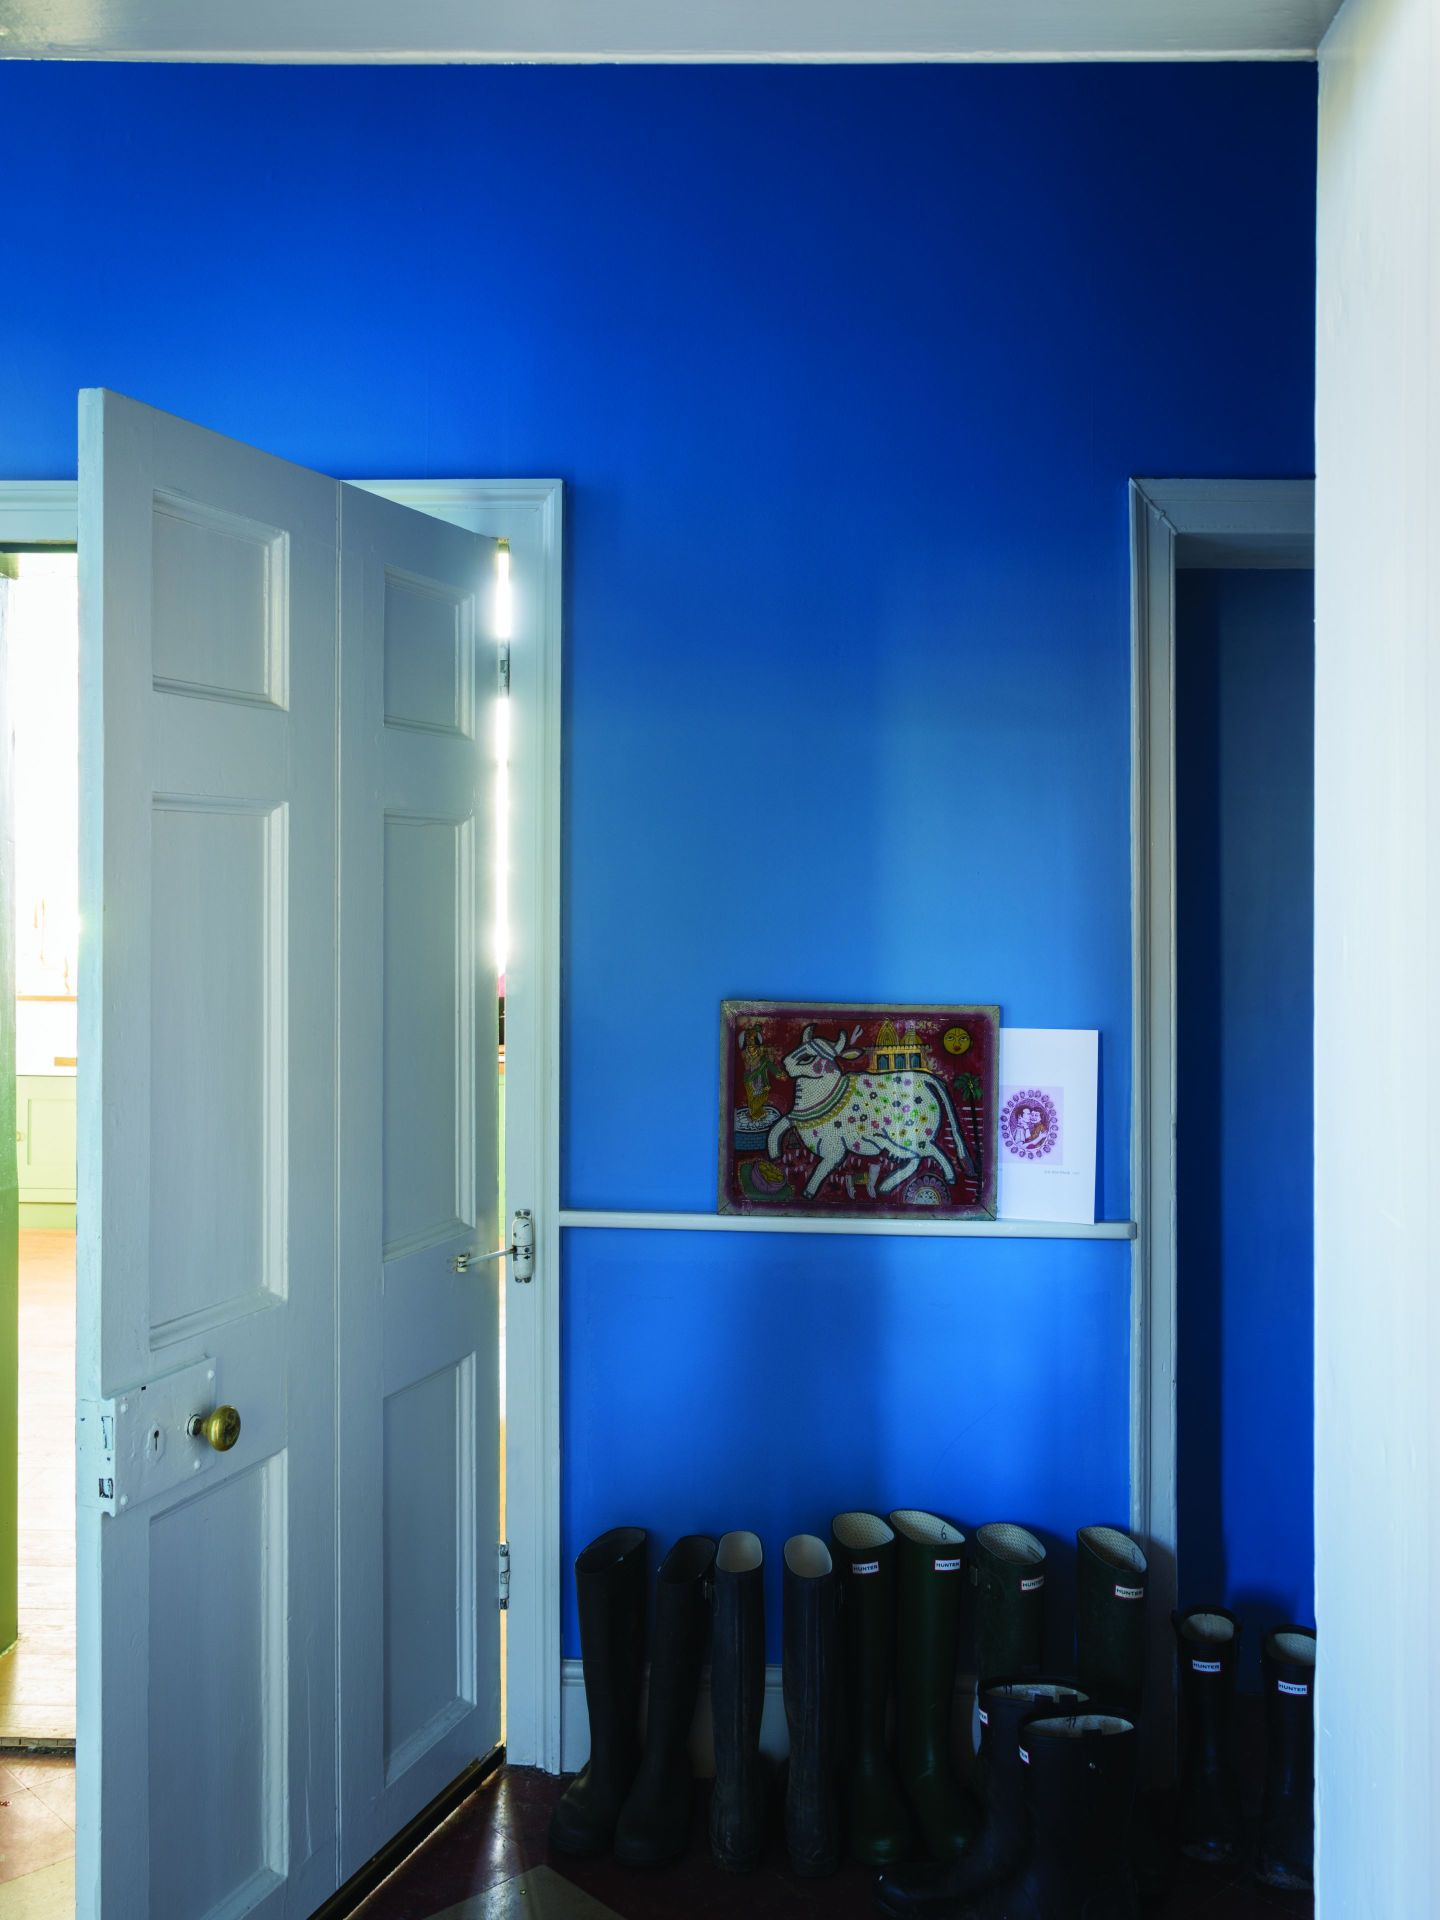 FarrowBall_1182368_CooksBlueHall.jpg-1440x1920 Paint Inspiration: 20 Colorful Rooms We Love